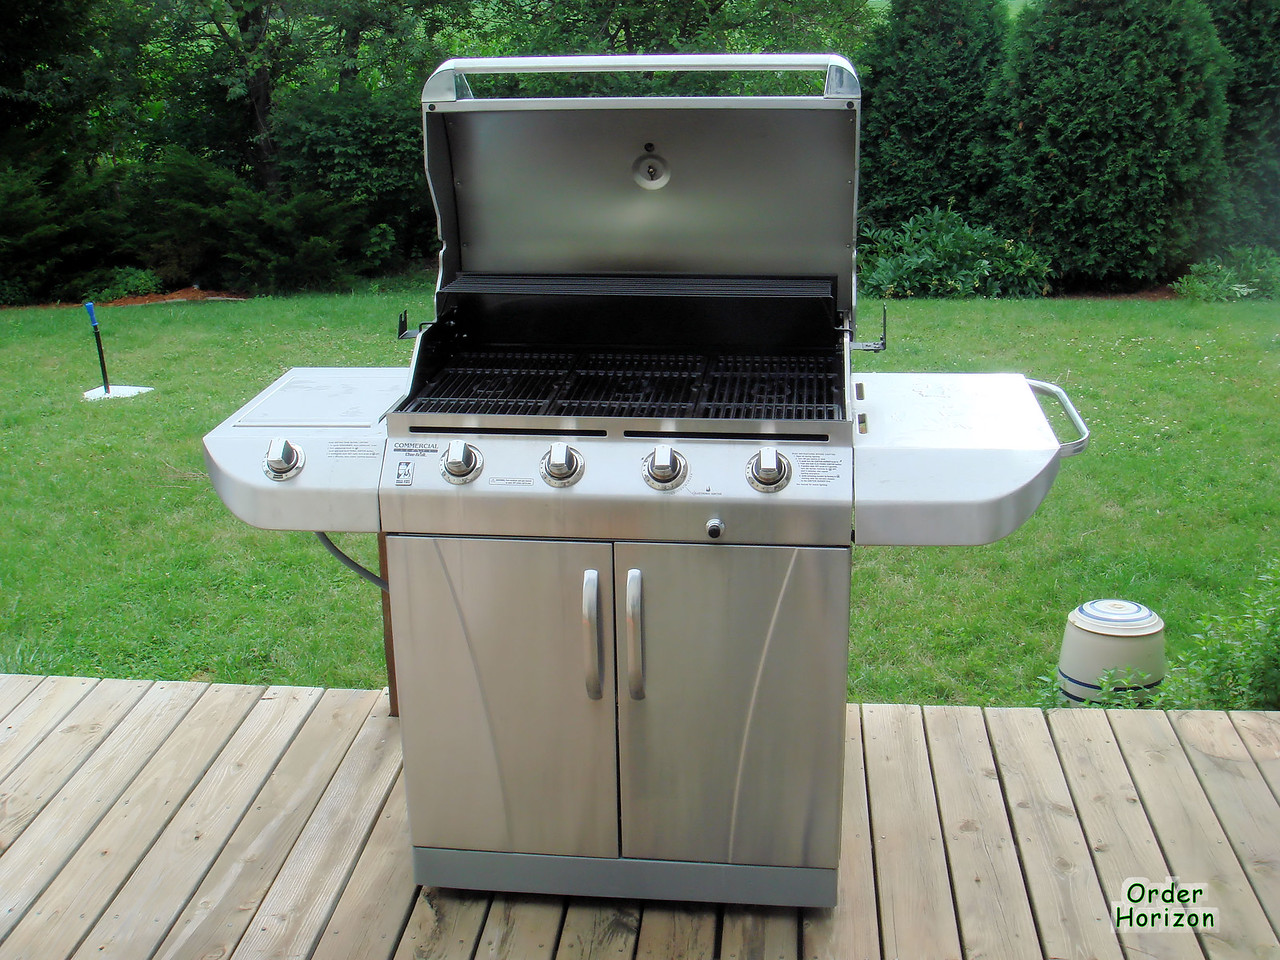 The new grill, operational after much futzing about